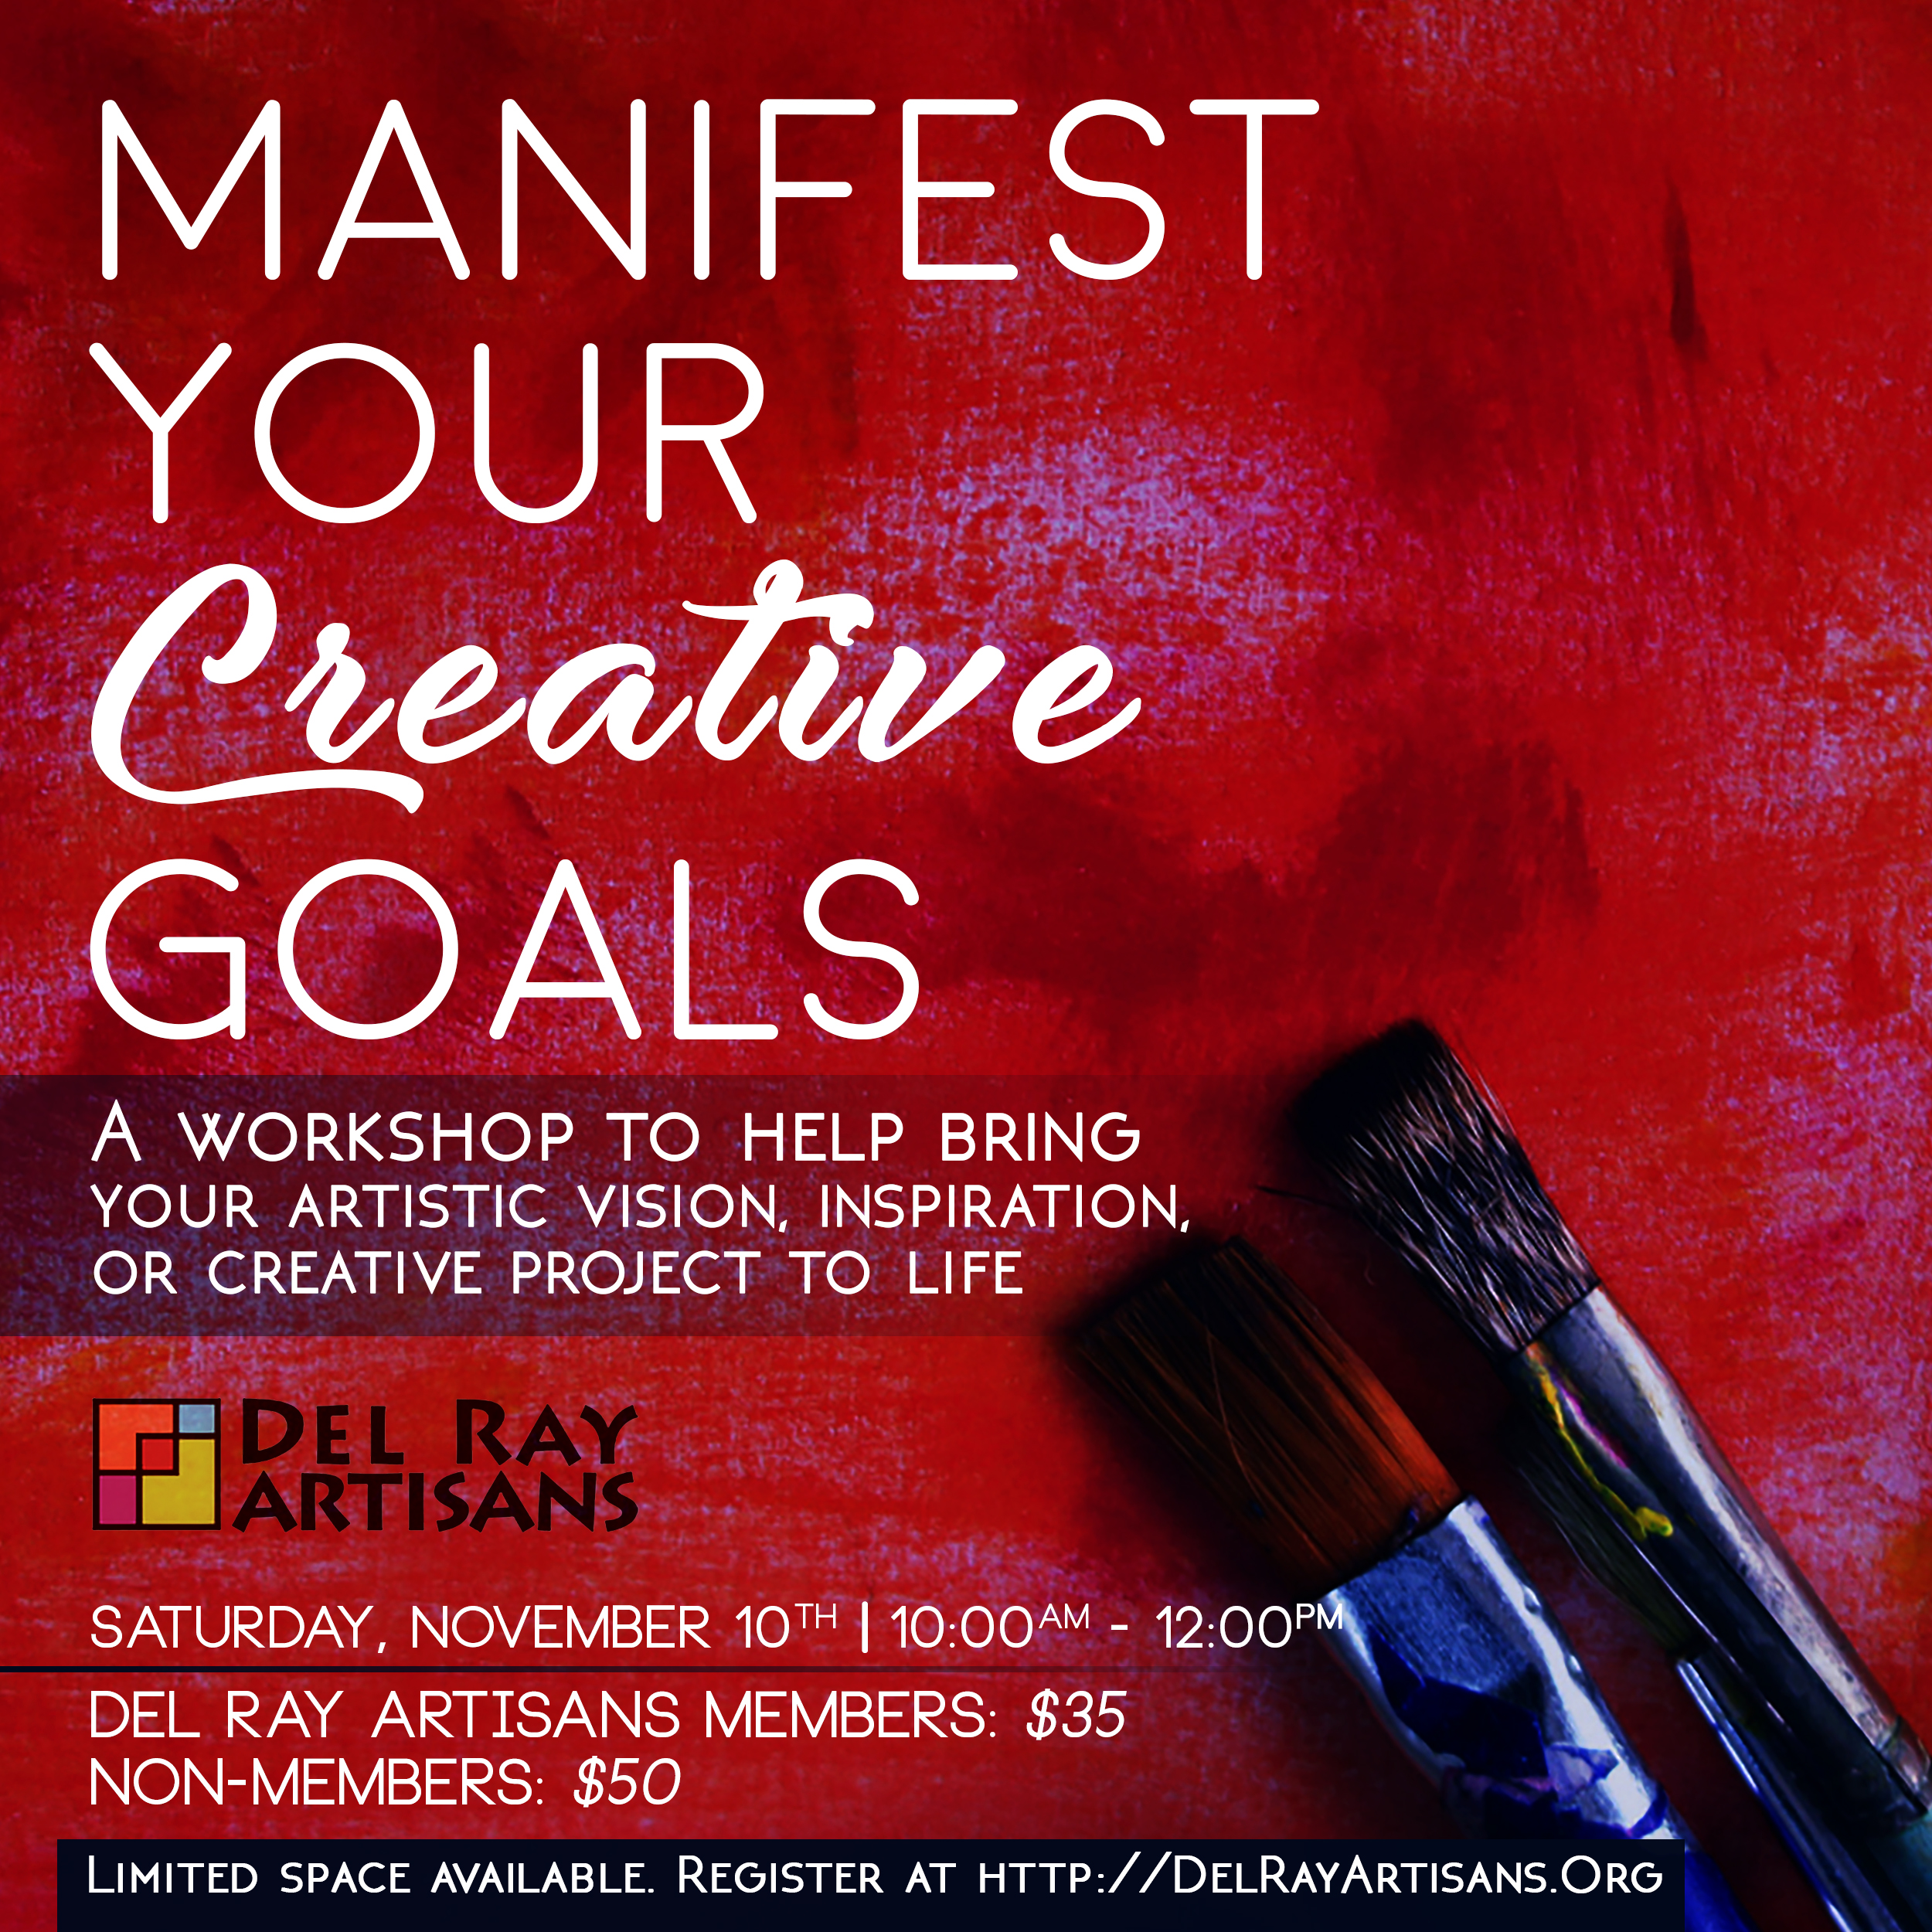 Canceled Manifest Your Creative Goals Del Ray Artisans